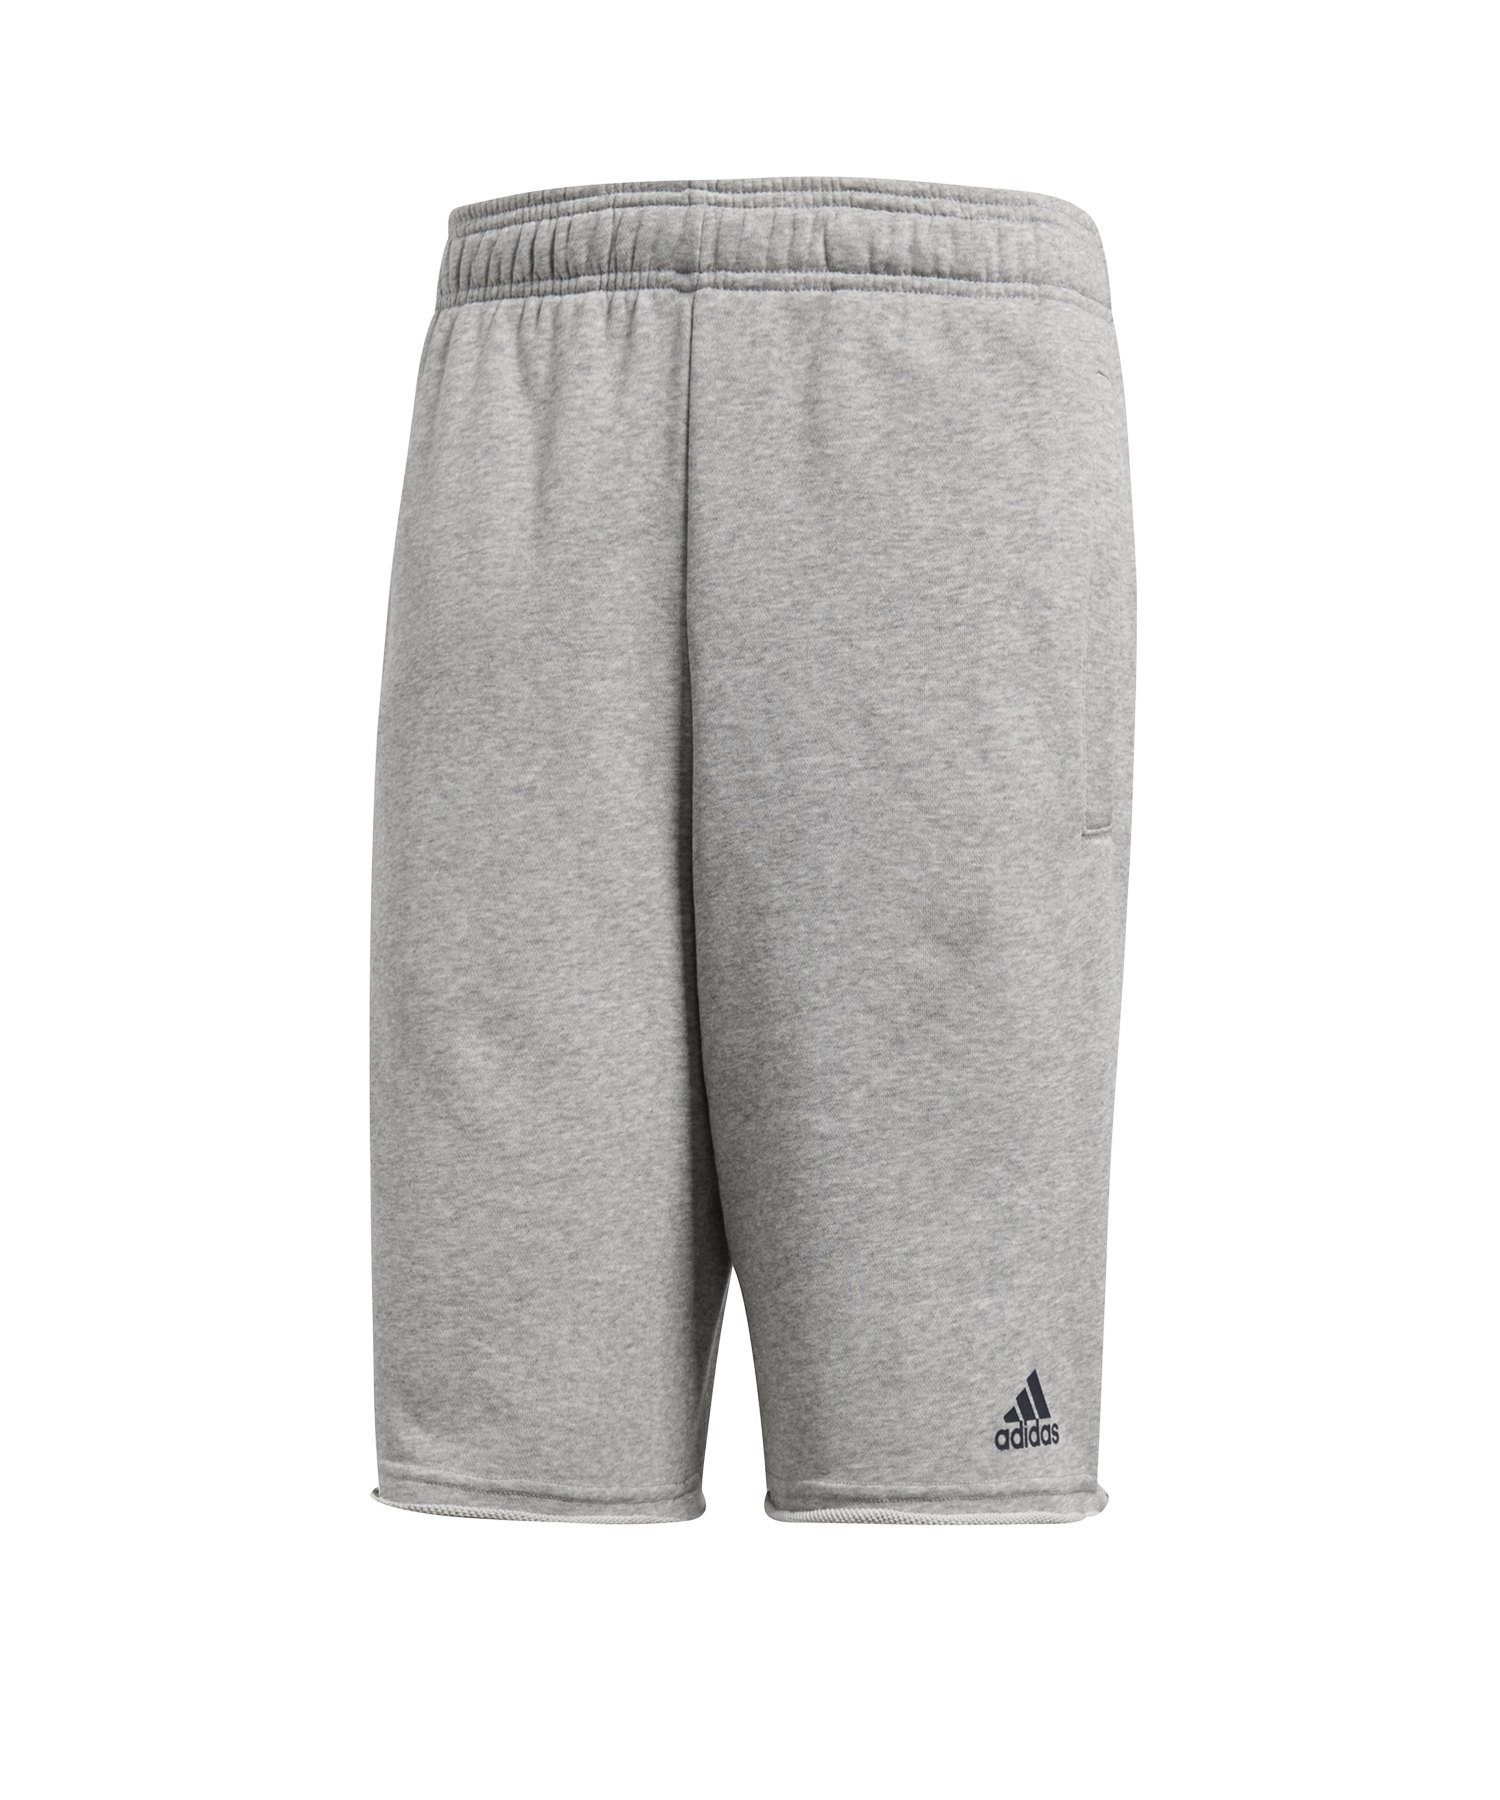 adidas Essentials Raw Ham Short Grau - grau